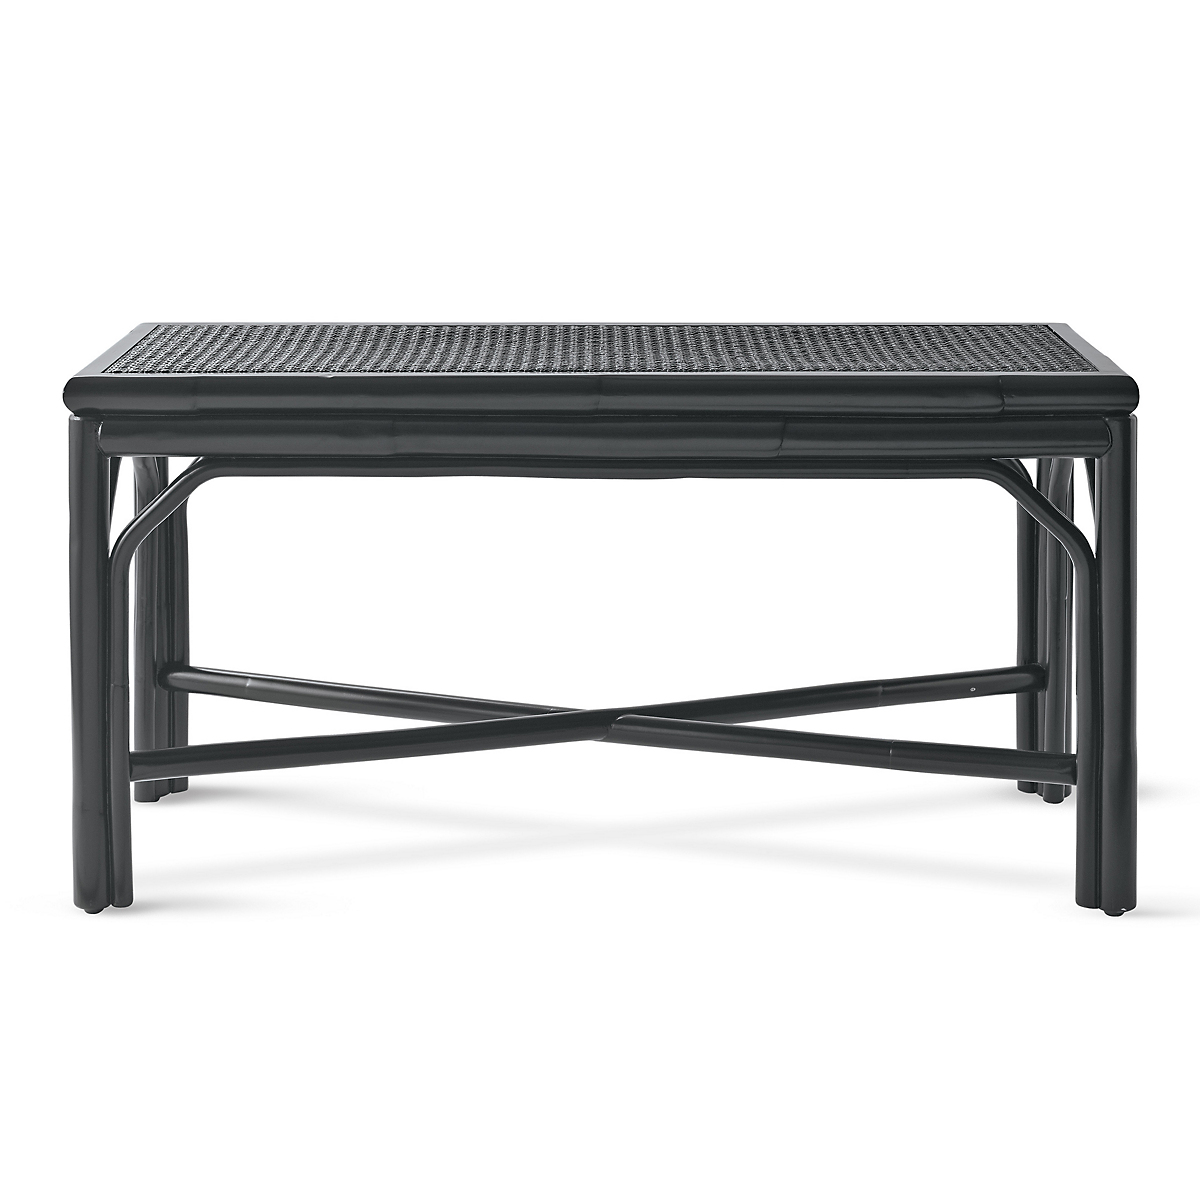 Black Cane Bench